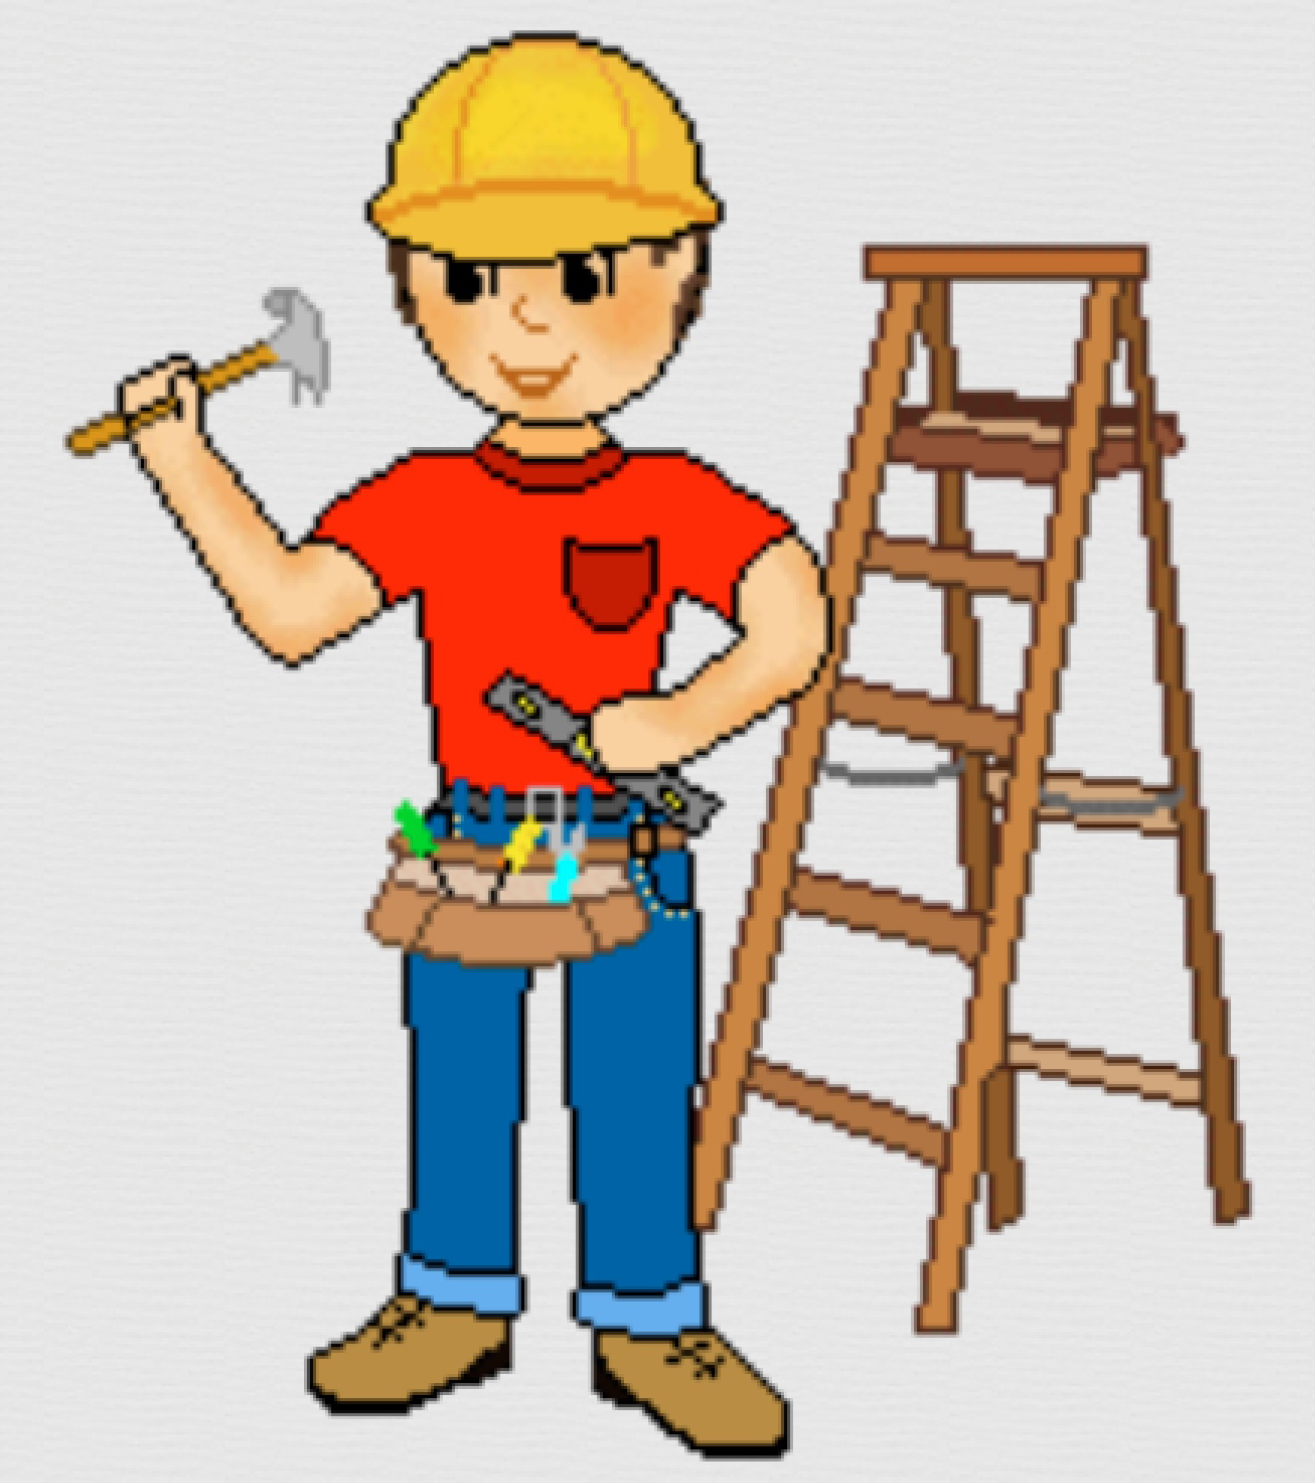 Free Construction Worker Cliparts, Download Free Clip Art.